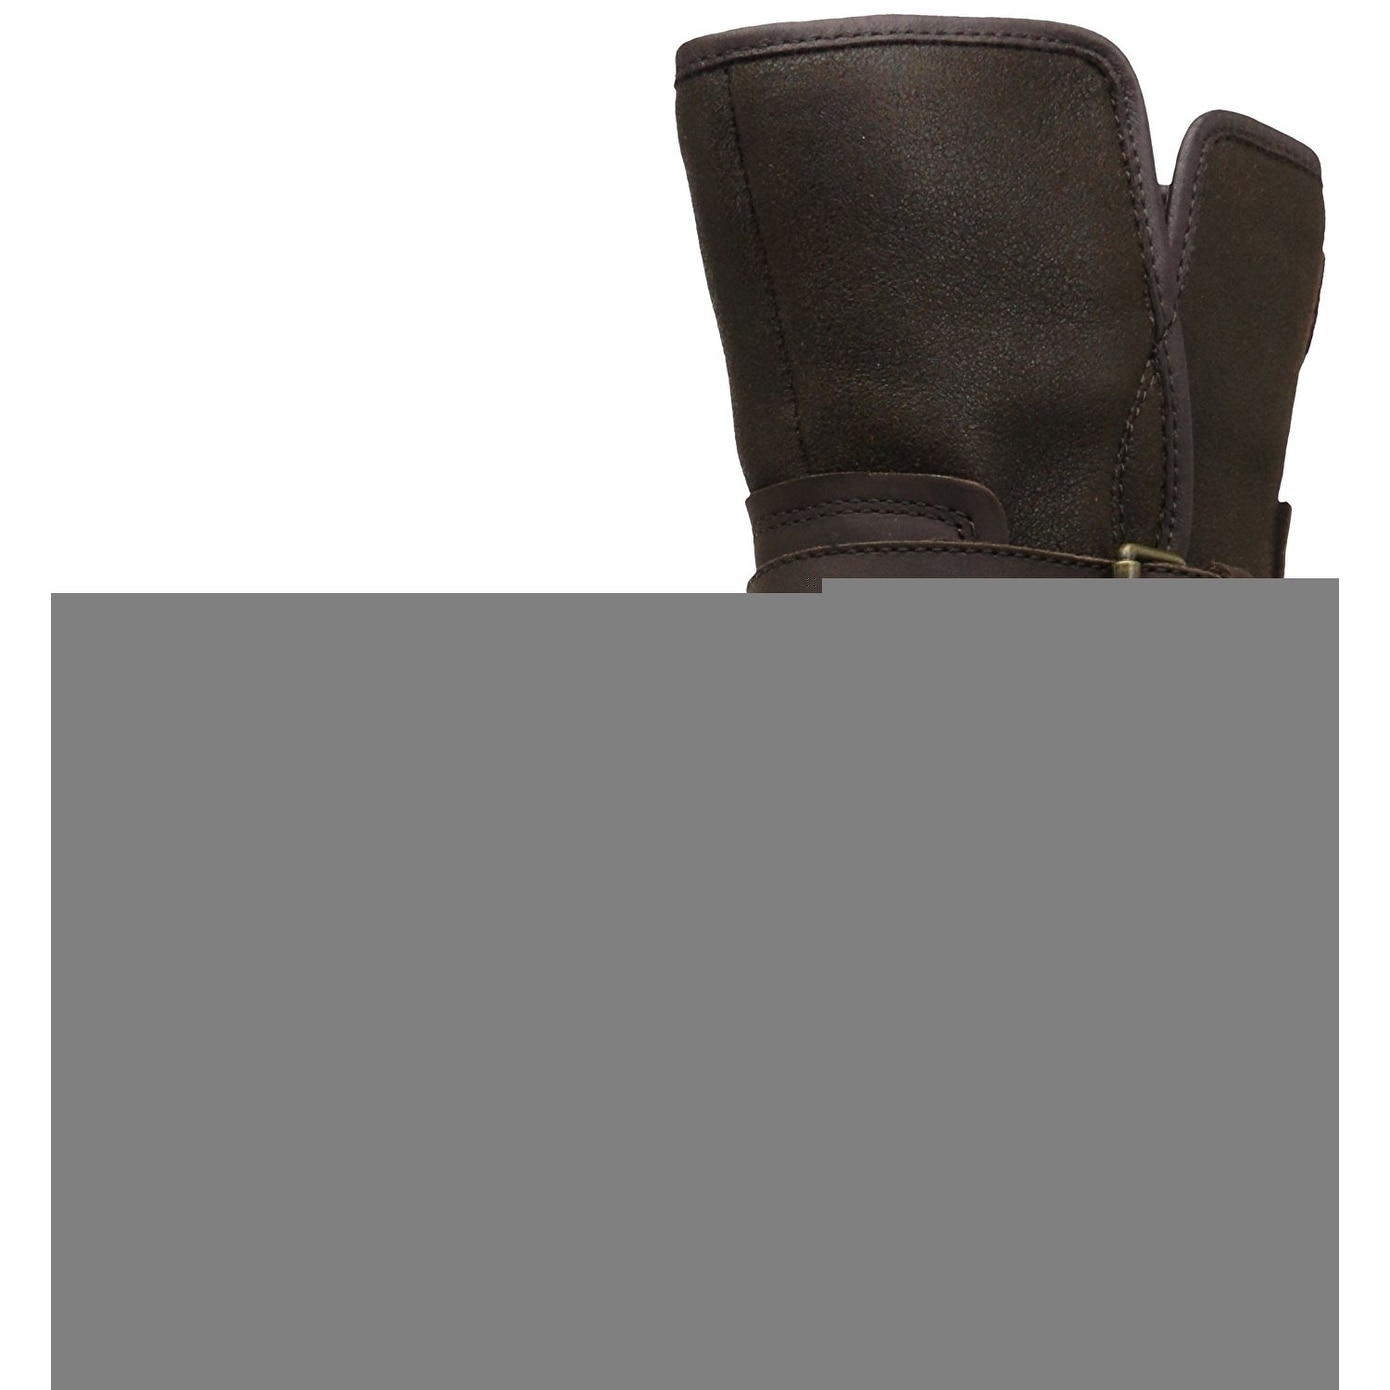 eabe70dbd11 Ugg Women's Simmens lined with Plush Wool Leather Boot